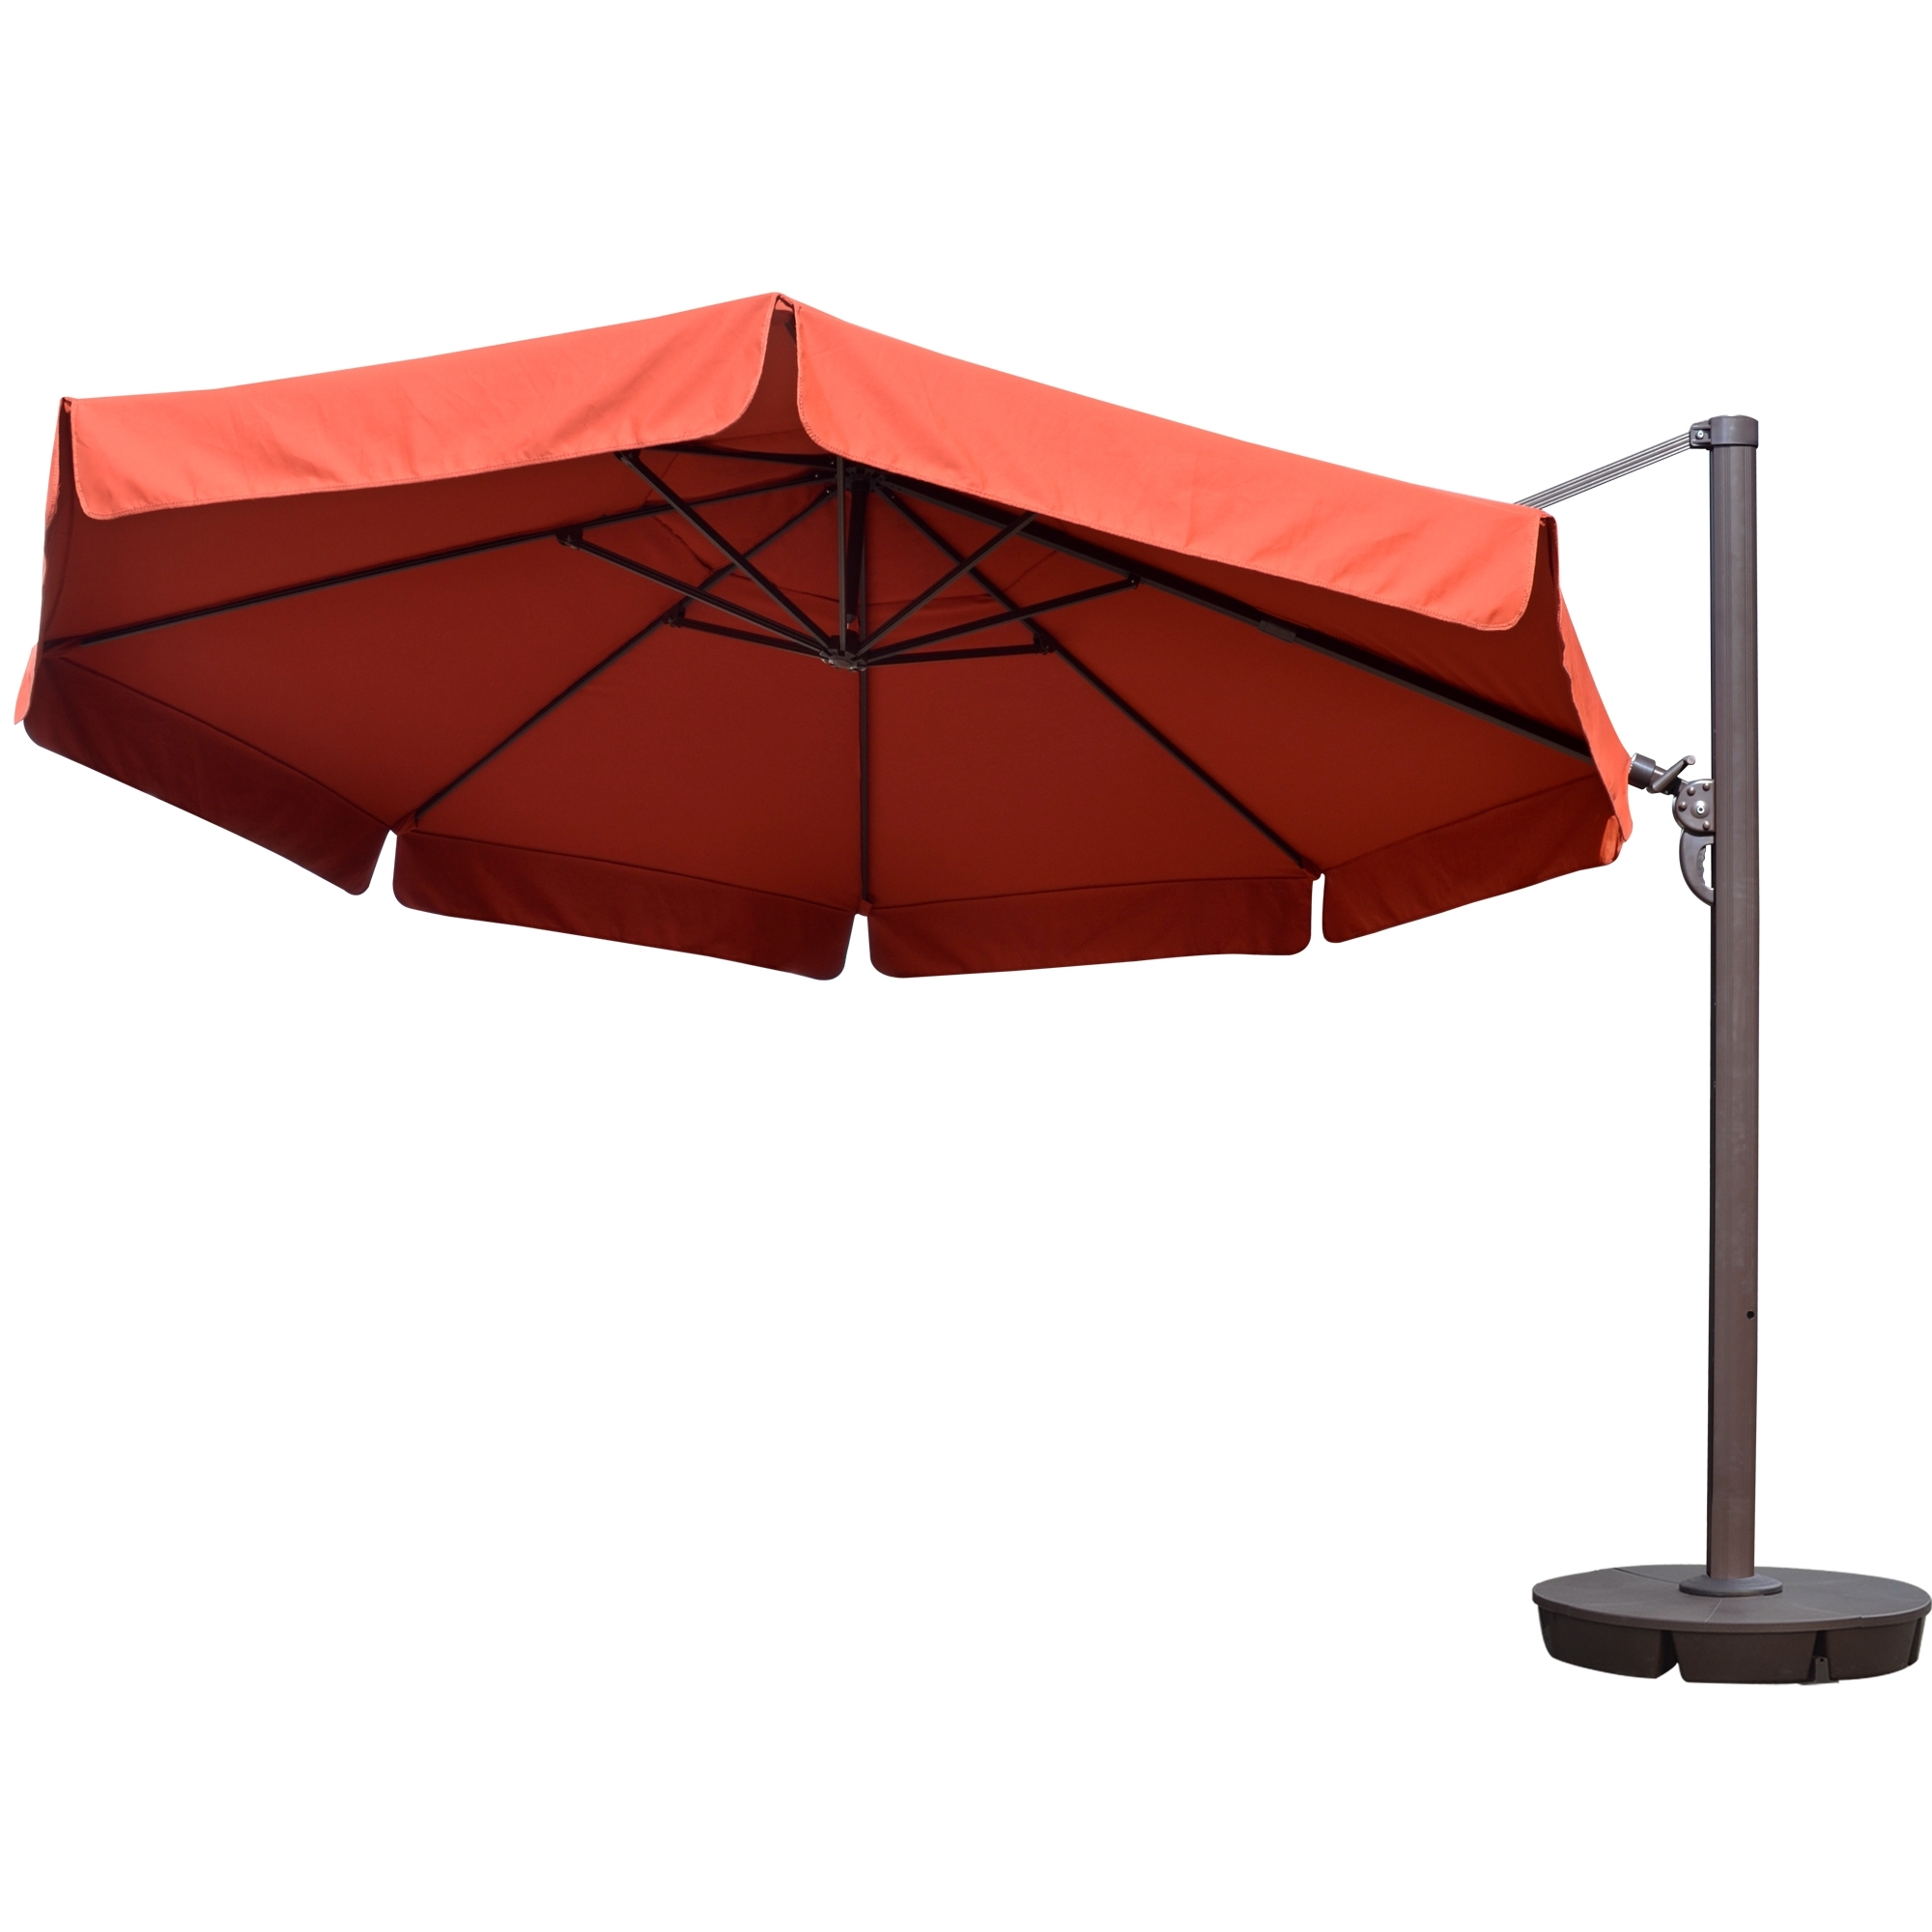 Patio Umbrellas With Valance In Well Known Island Umbrella Victoria 13 Ft Octagonal Cantilever W/ Valance Patio (Gallery 10 of 20)